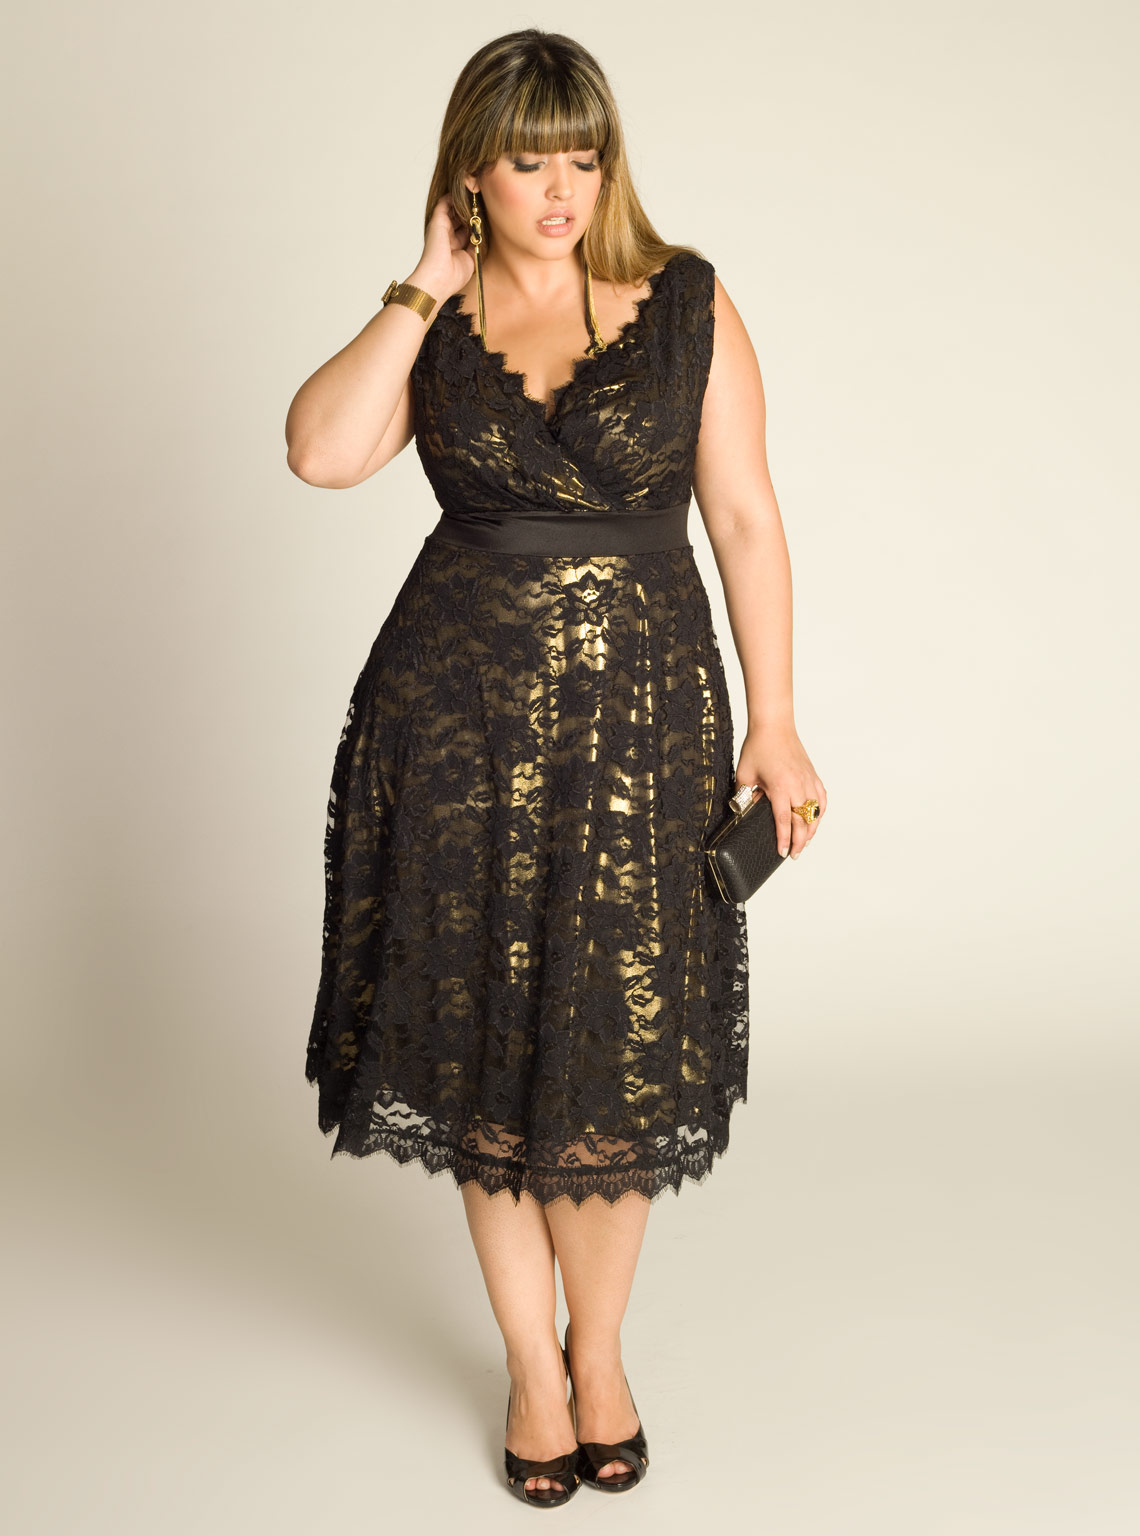 Plus size vintage dresses dressed up girl plus size vintage cocktail dresses ombrellifo Gallery